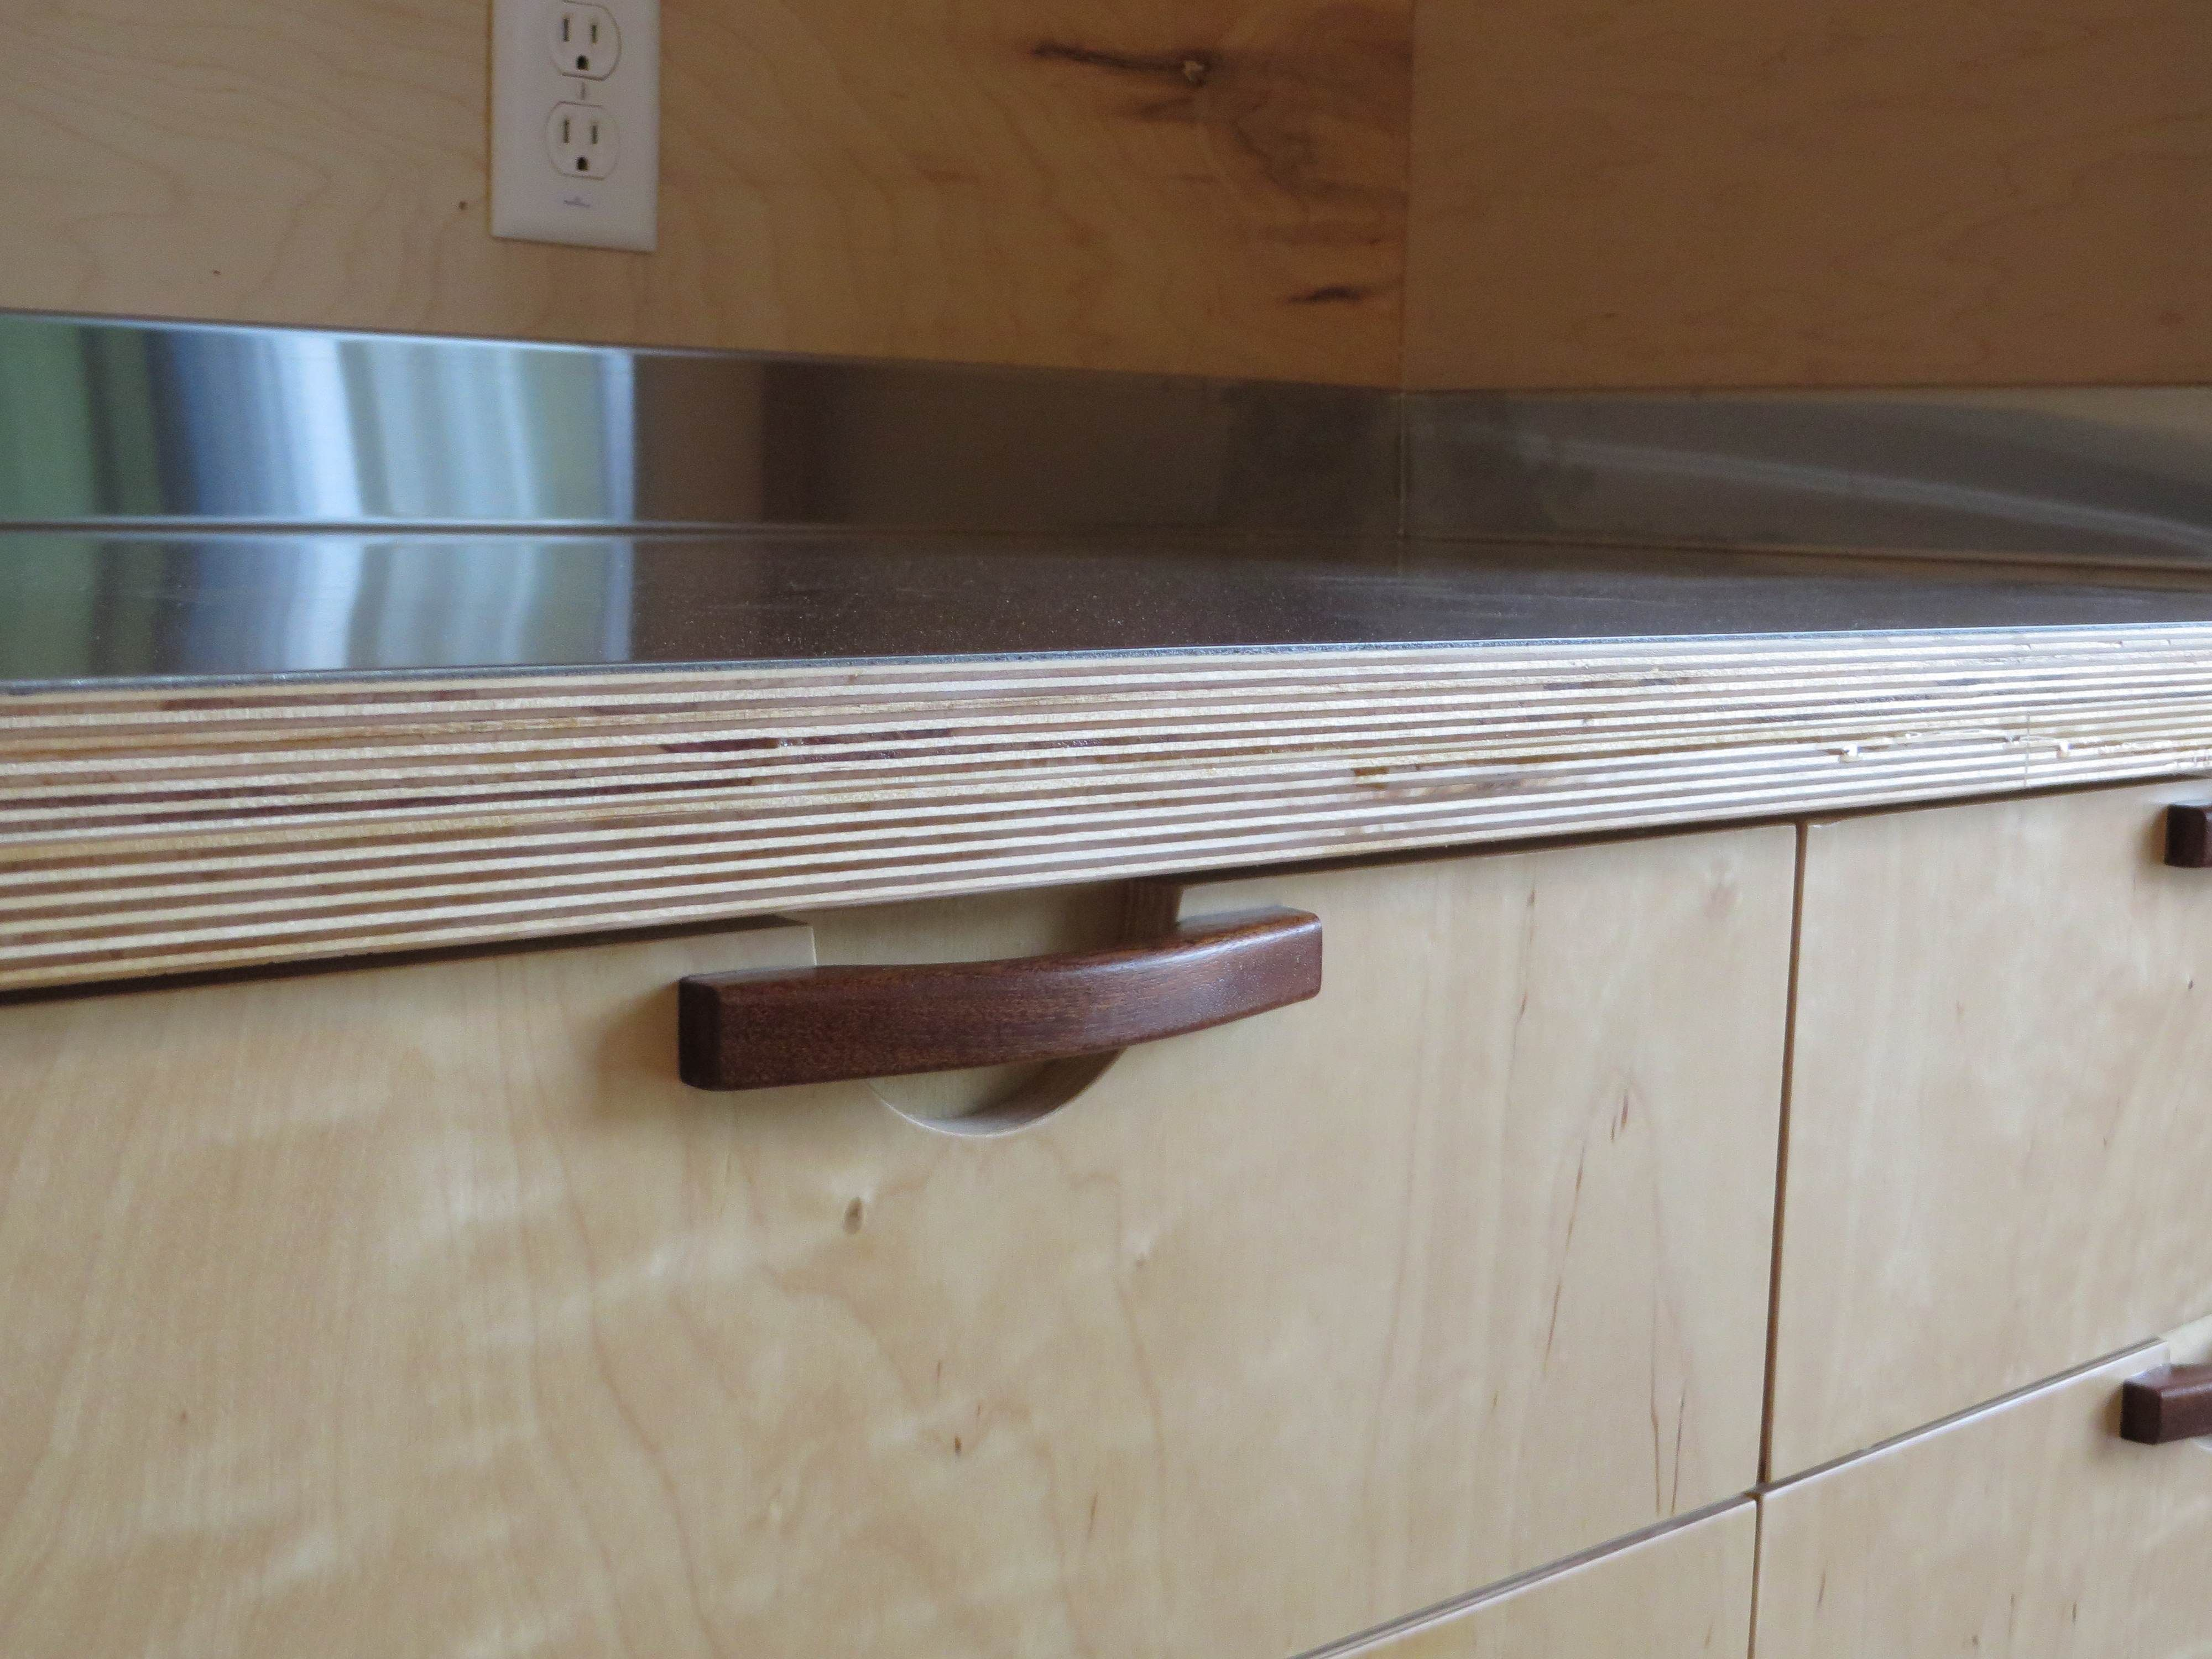 Stainless Steel Laminated To Baltic Birch Woodweb S Laminating And Solid Surfacing Forum